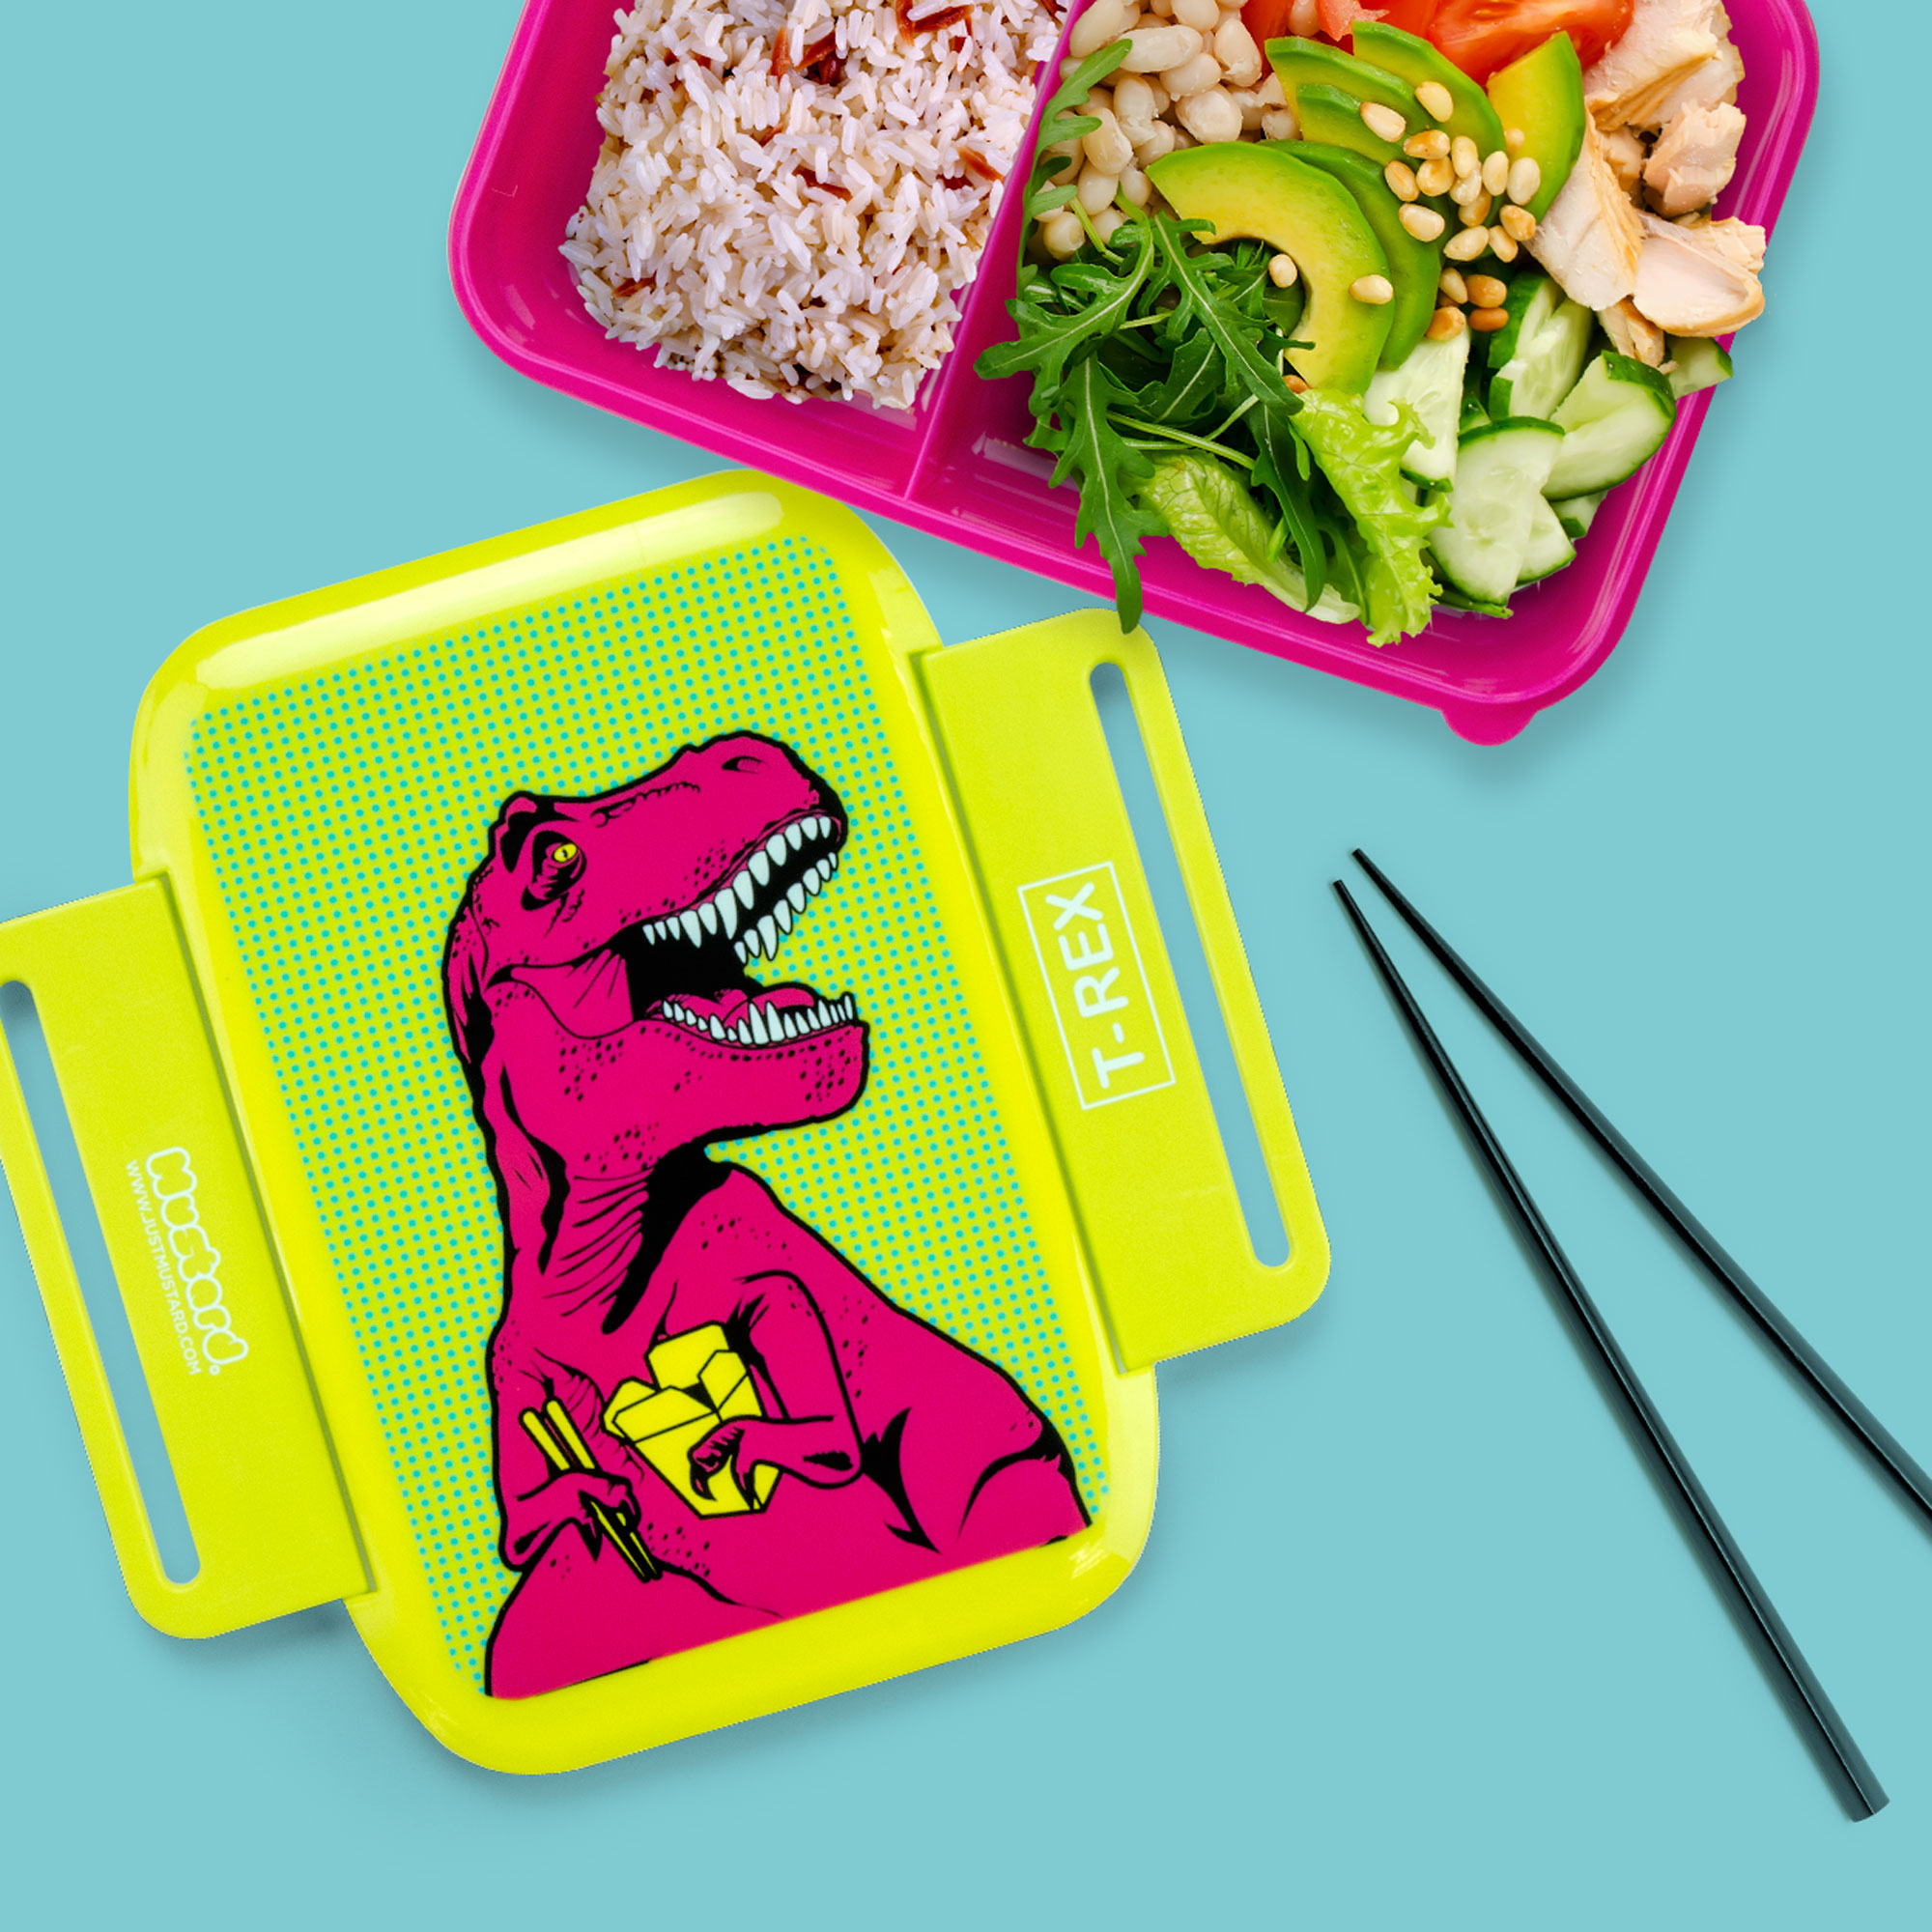 T-Rex Lunch Box from justmustard.com